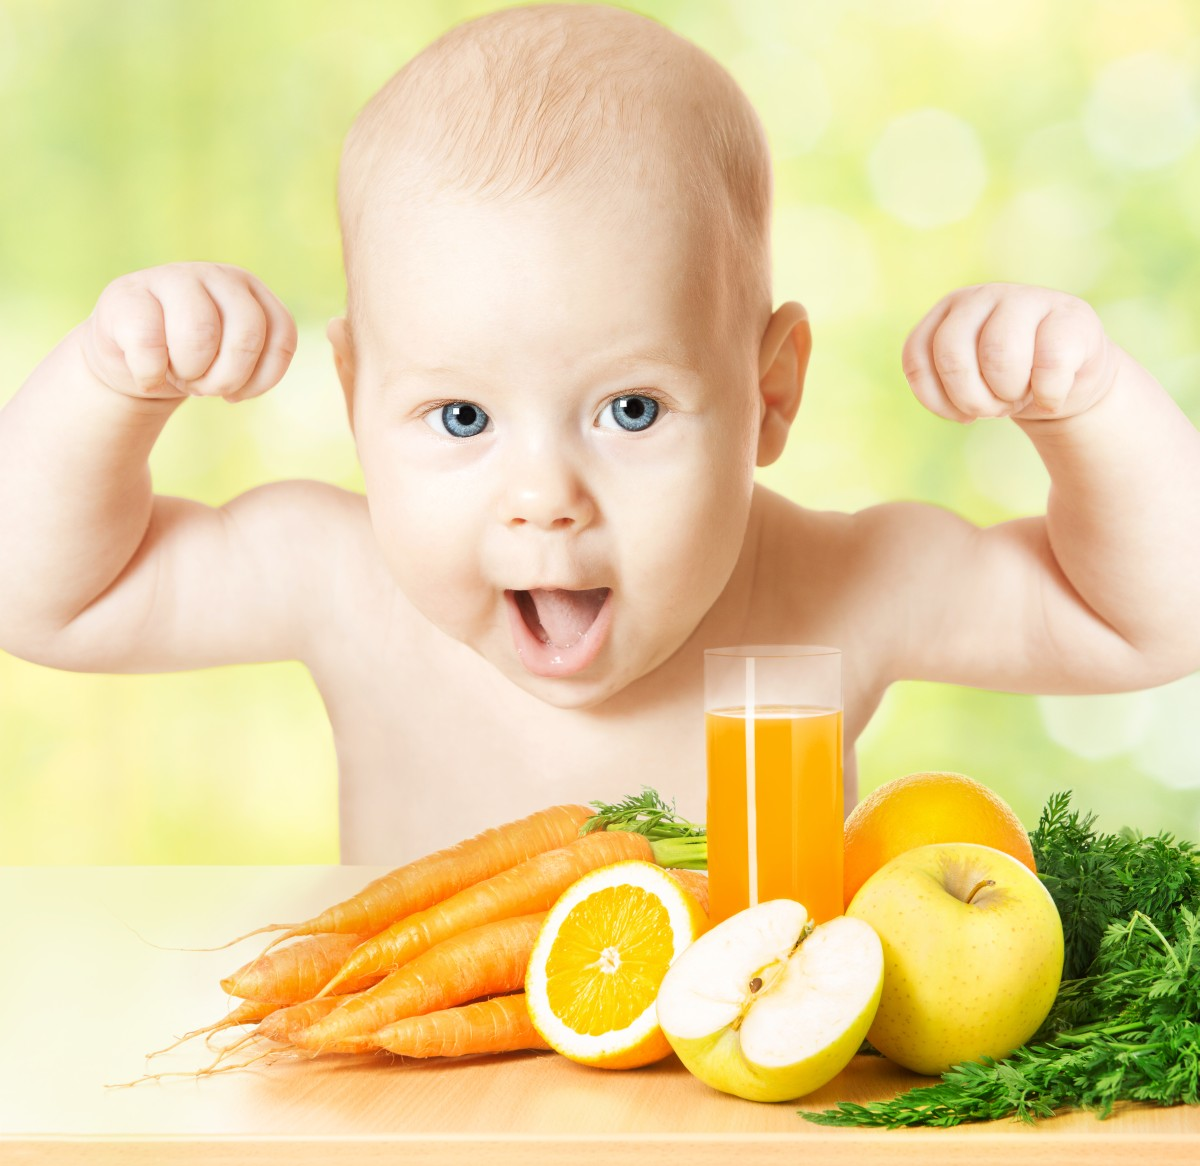 Strong Baby Fresh Fruit Meal And Juice Glass. Healthy Vitamin Ve